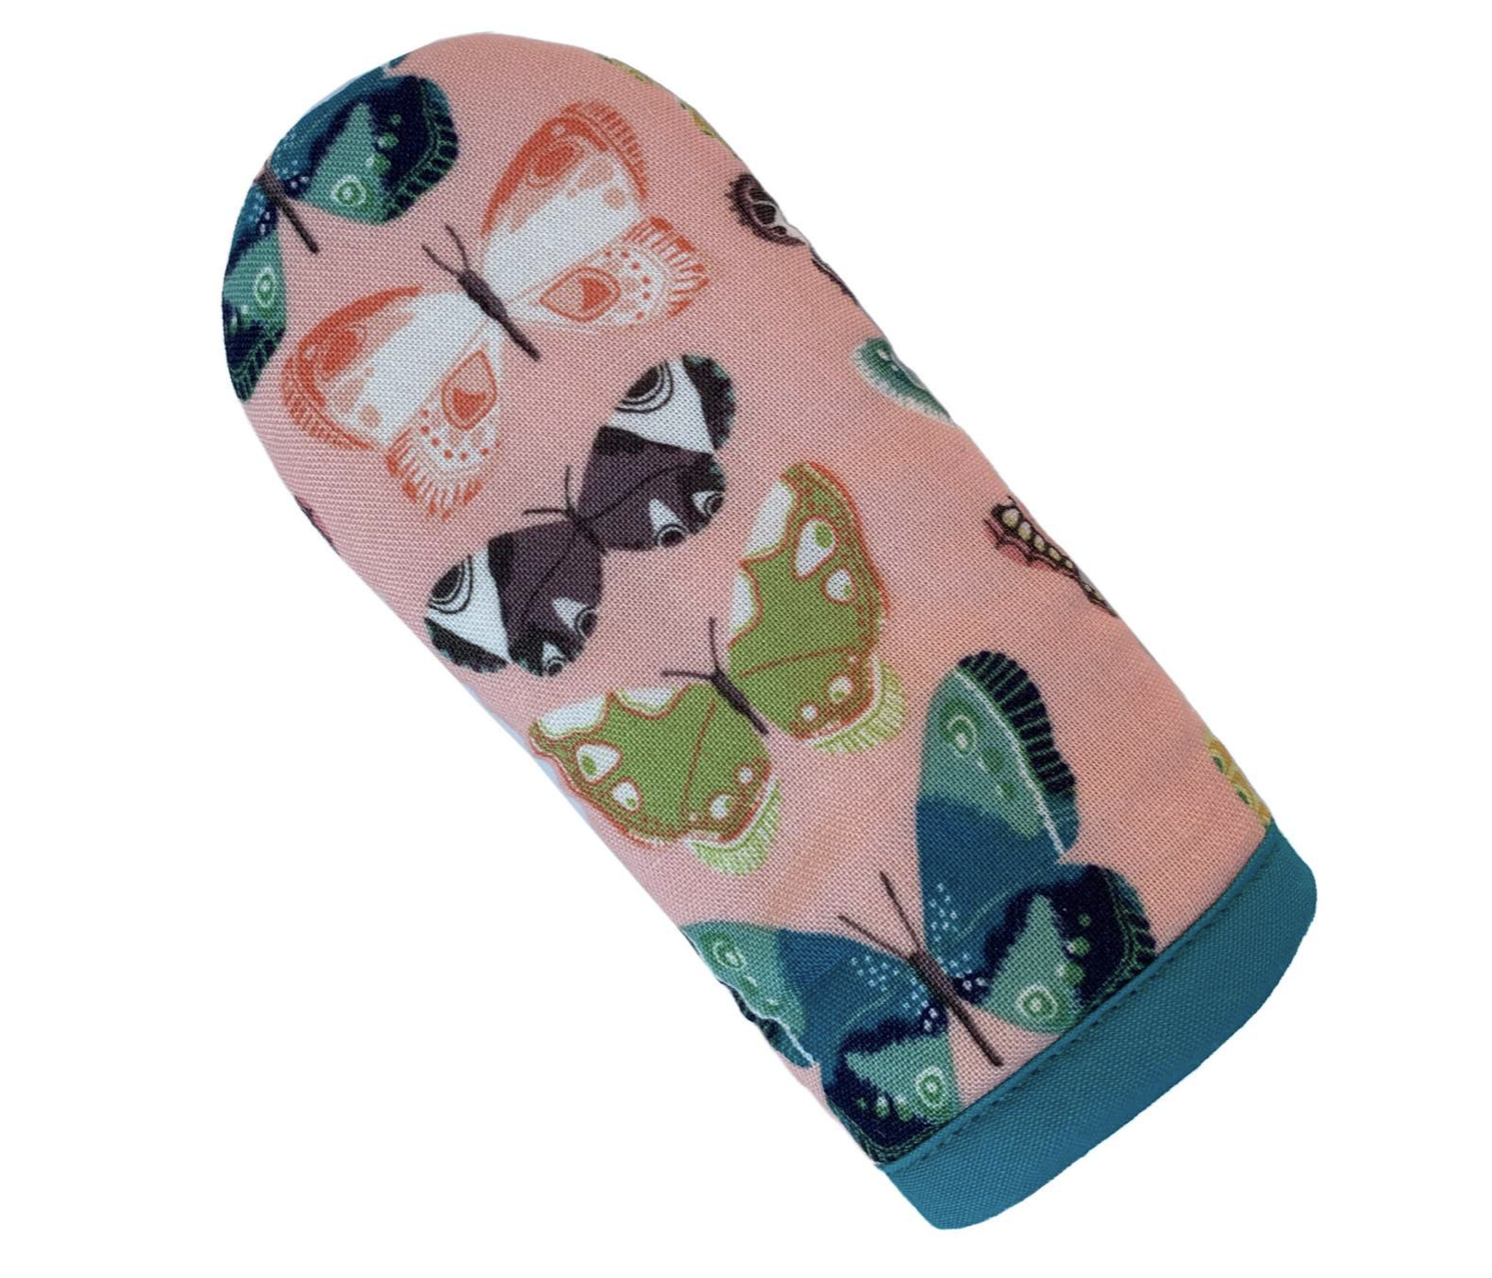 Oven Mitt - Cast Iron Handle - Choose From Designs